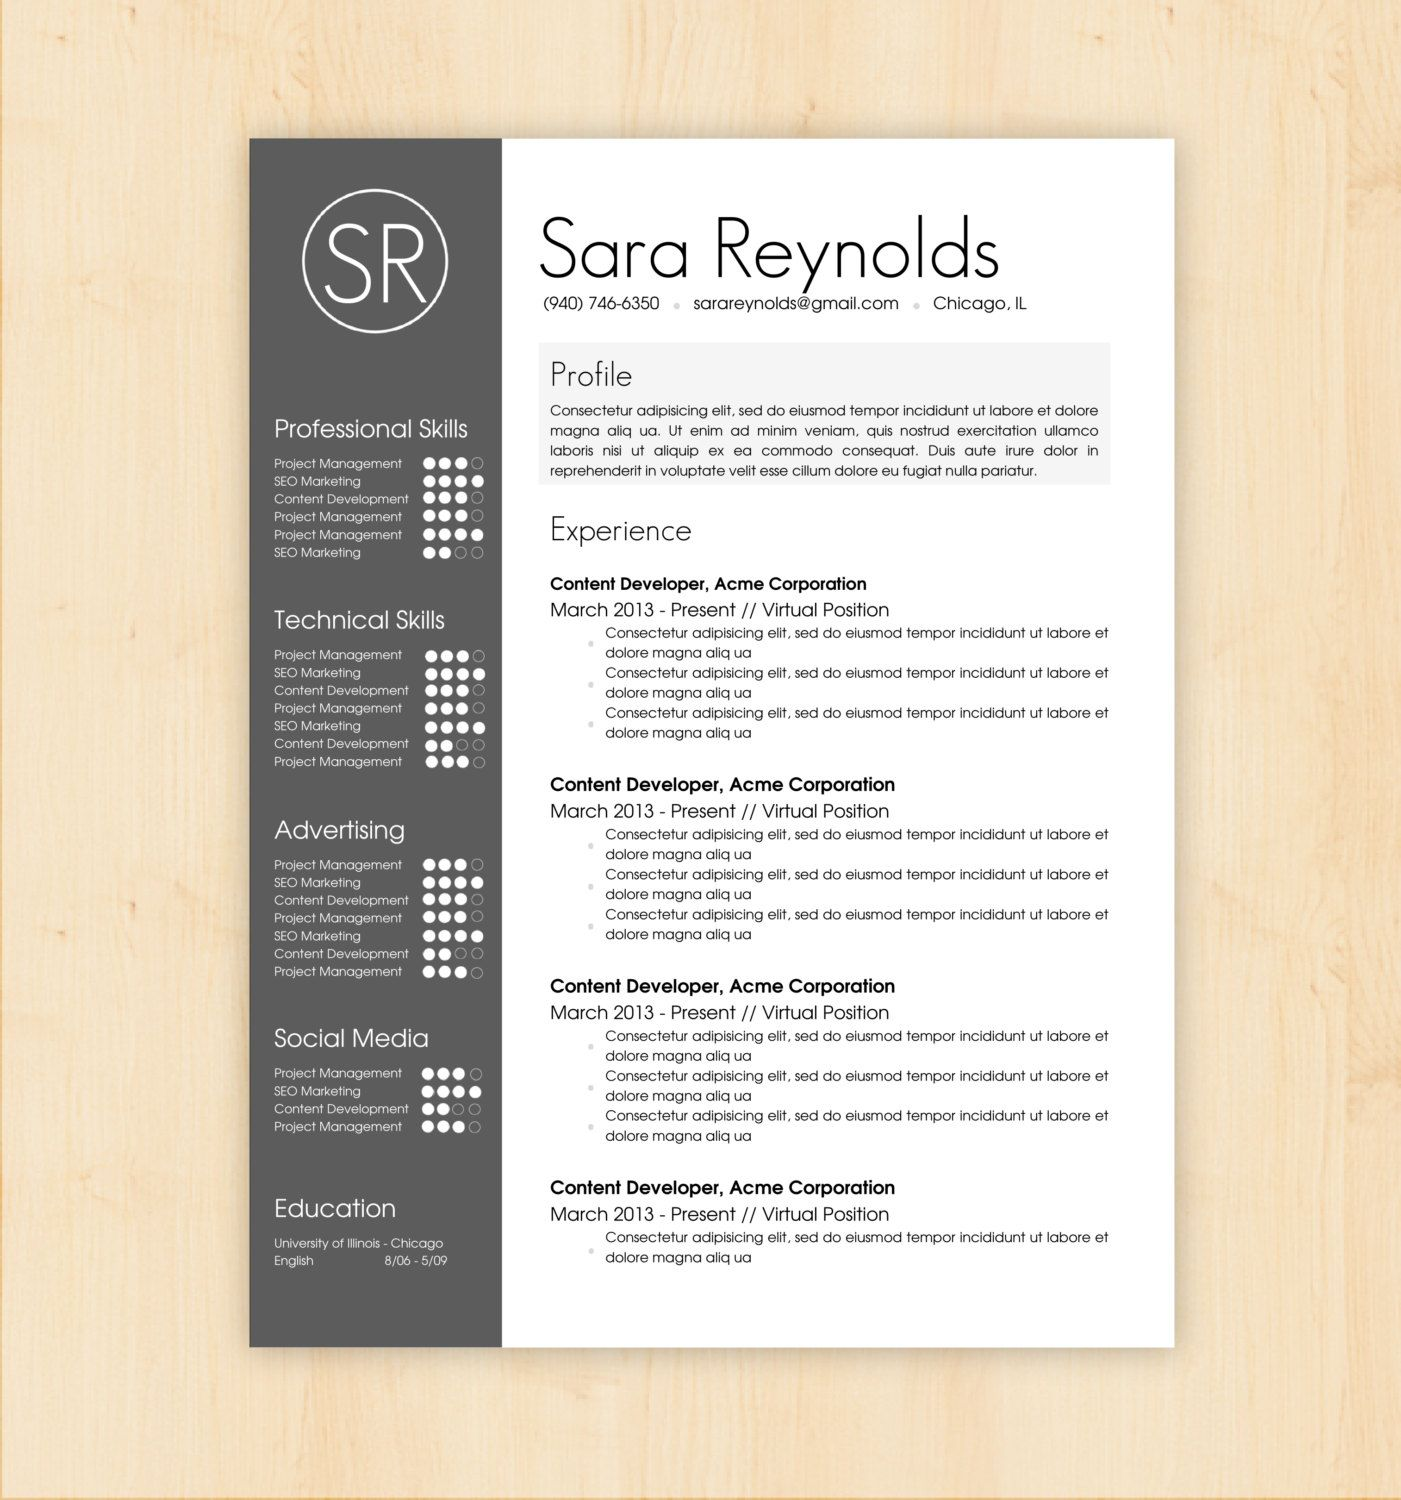 resume template cover letter template cv template wbusiness card template modern resume w skills word document template a4 us letter - Creative Resume Templates Free Word